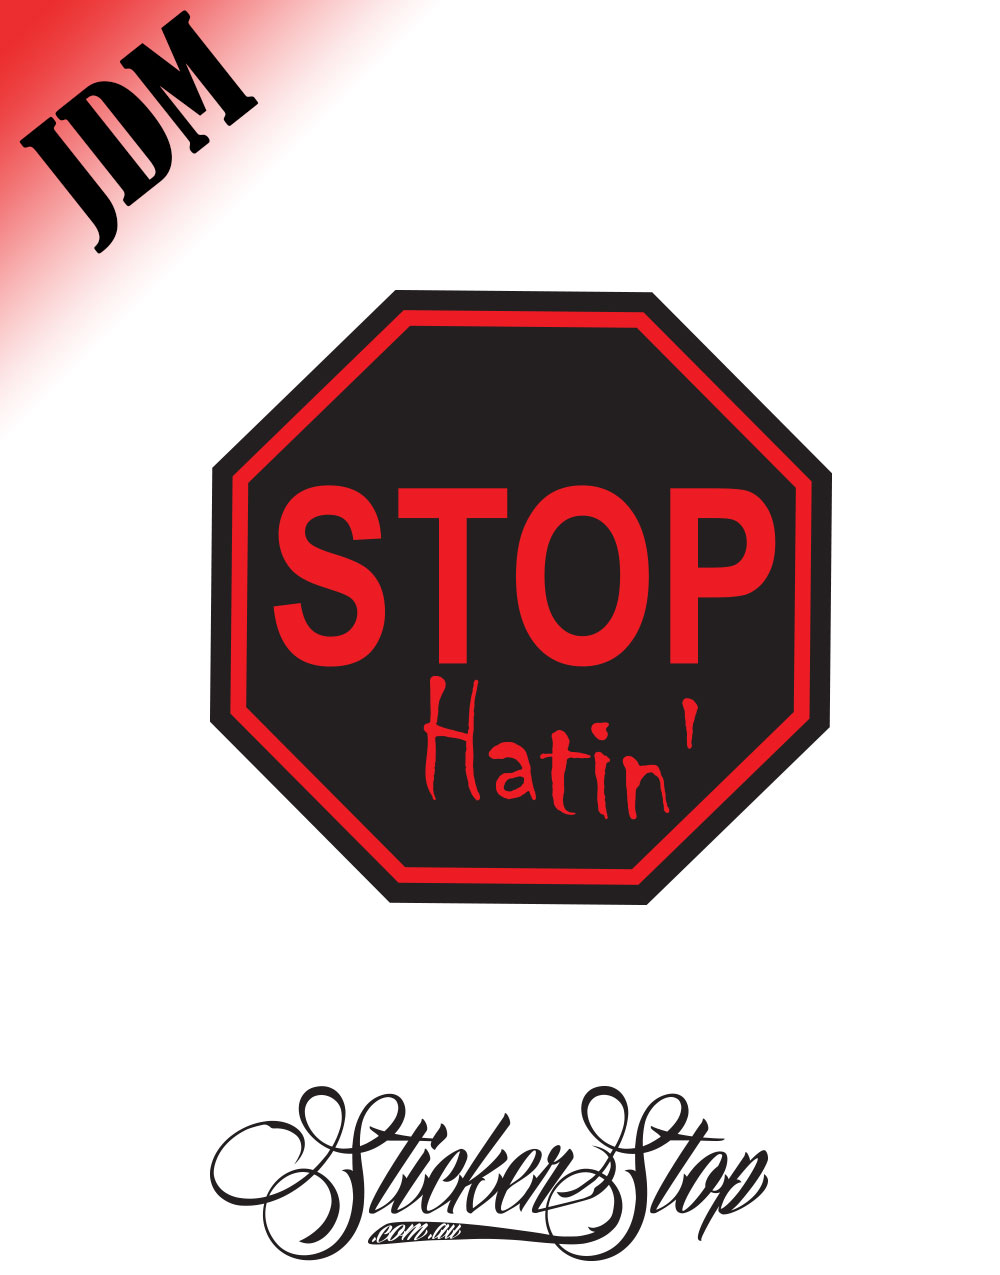 STOP Hatin JDM Sticker Decal